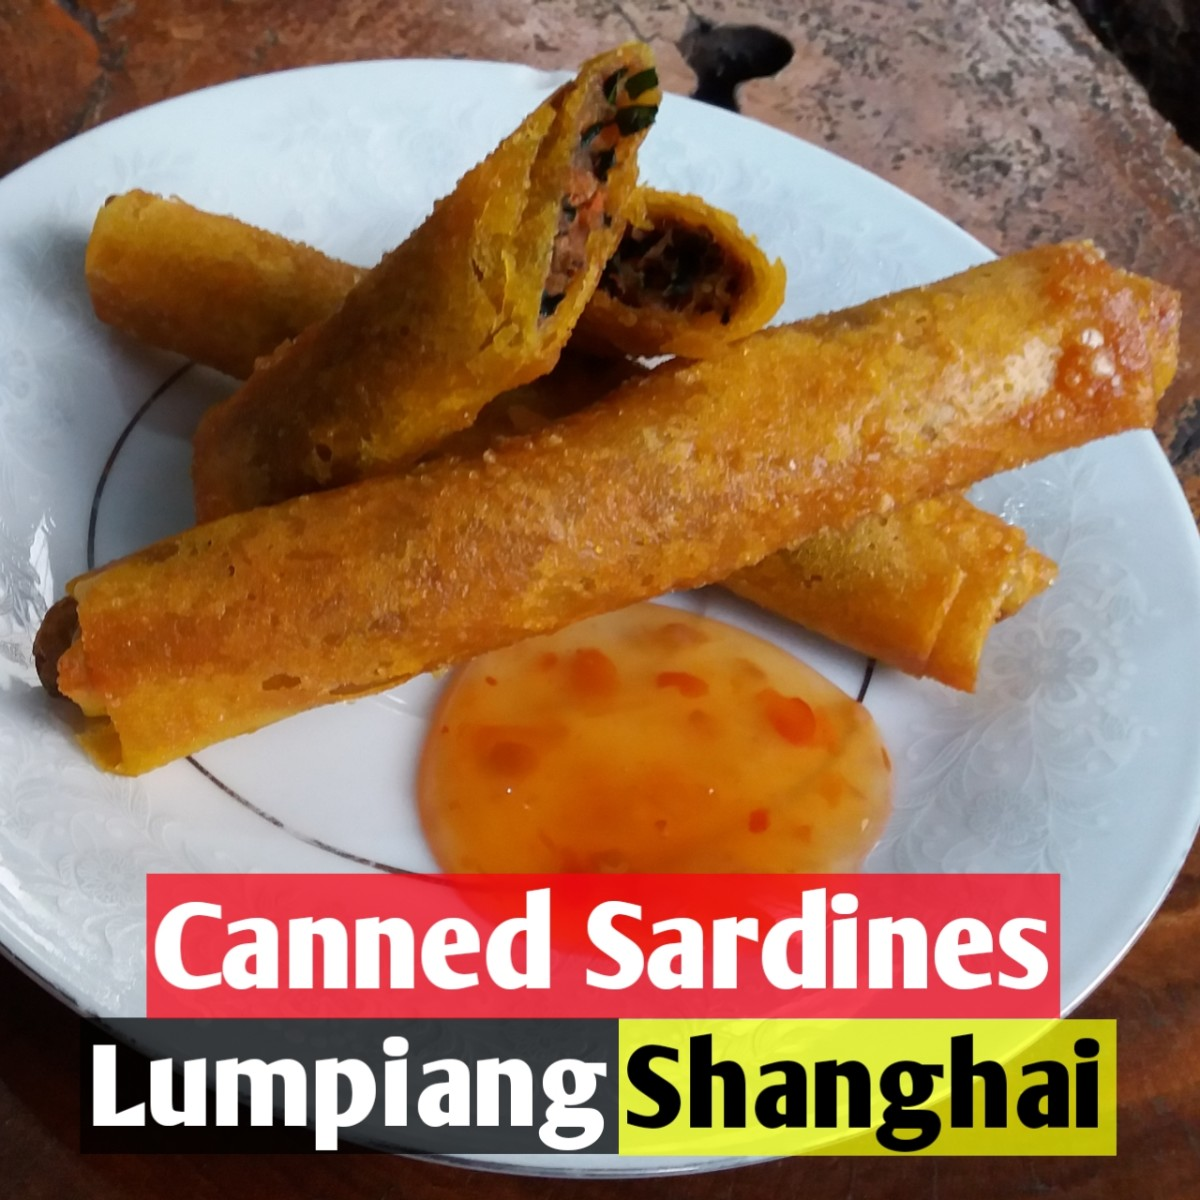 How to Make Canned Sardines Lumpiang Shanghai